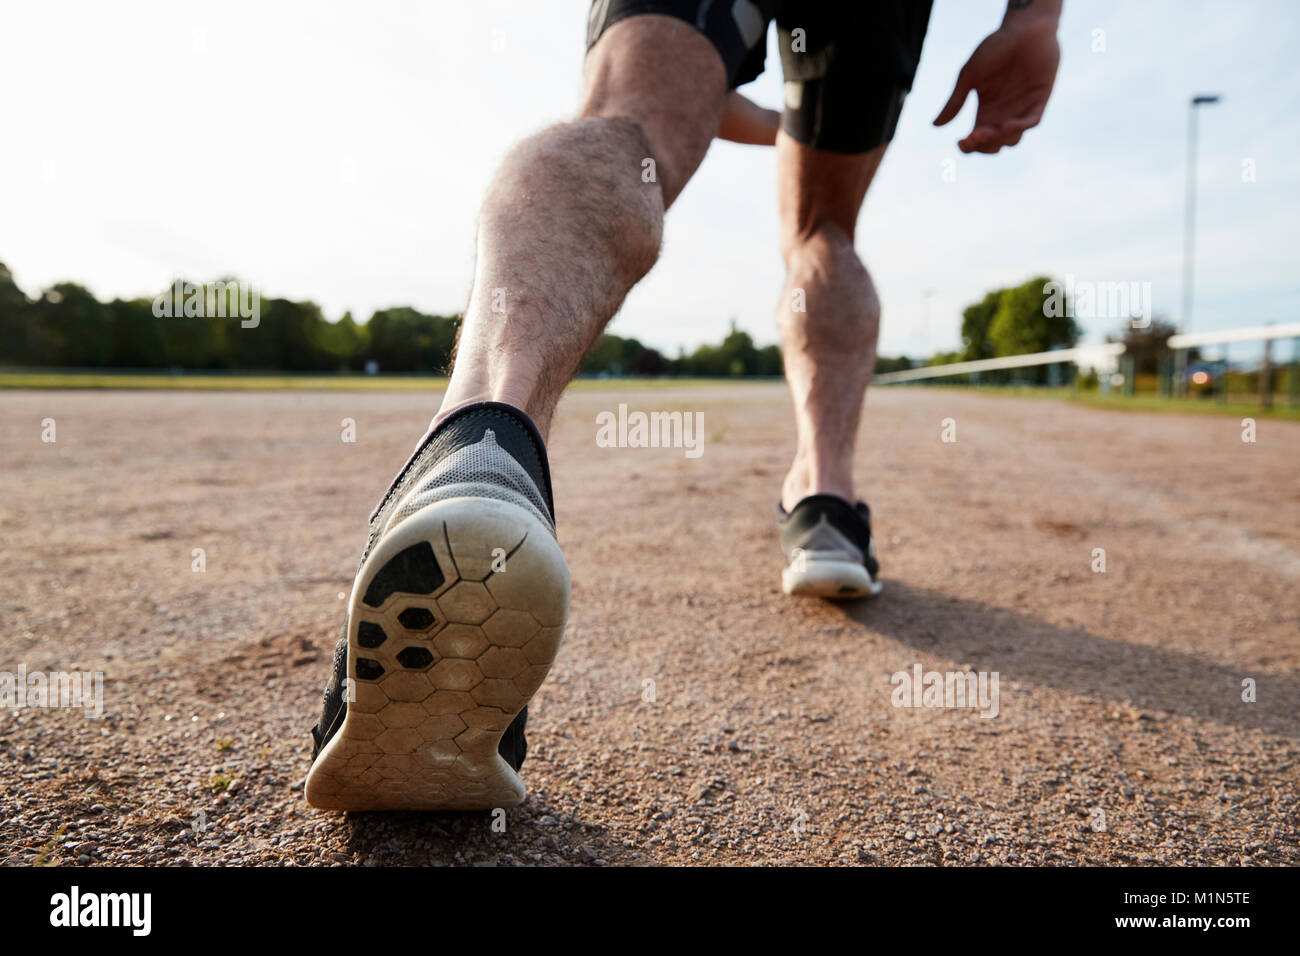 Low section of male runner's legs ready to run at a track - Stock Image